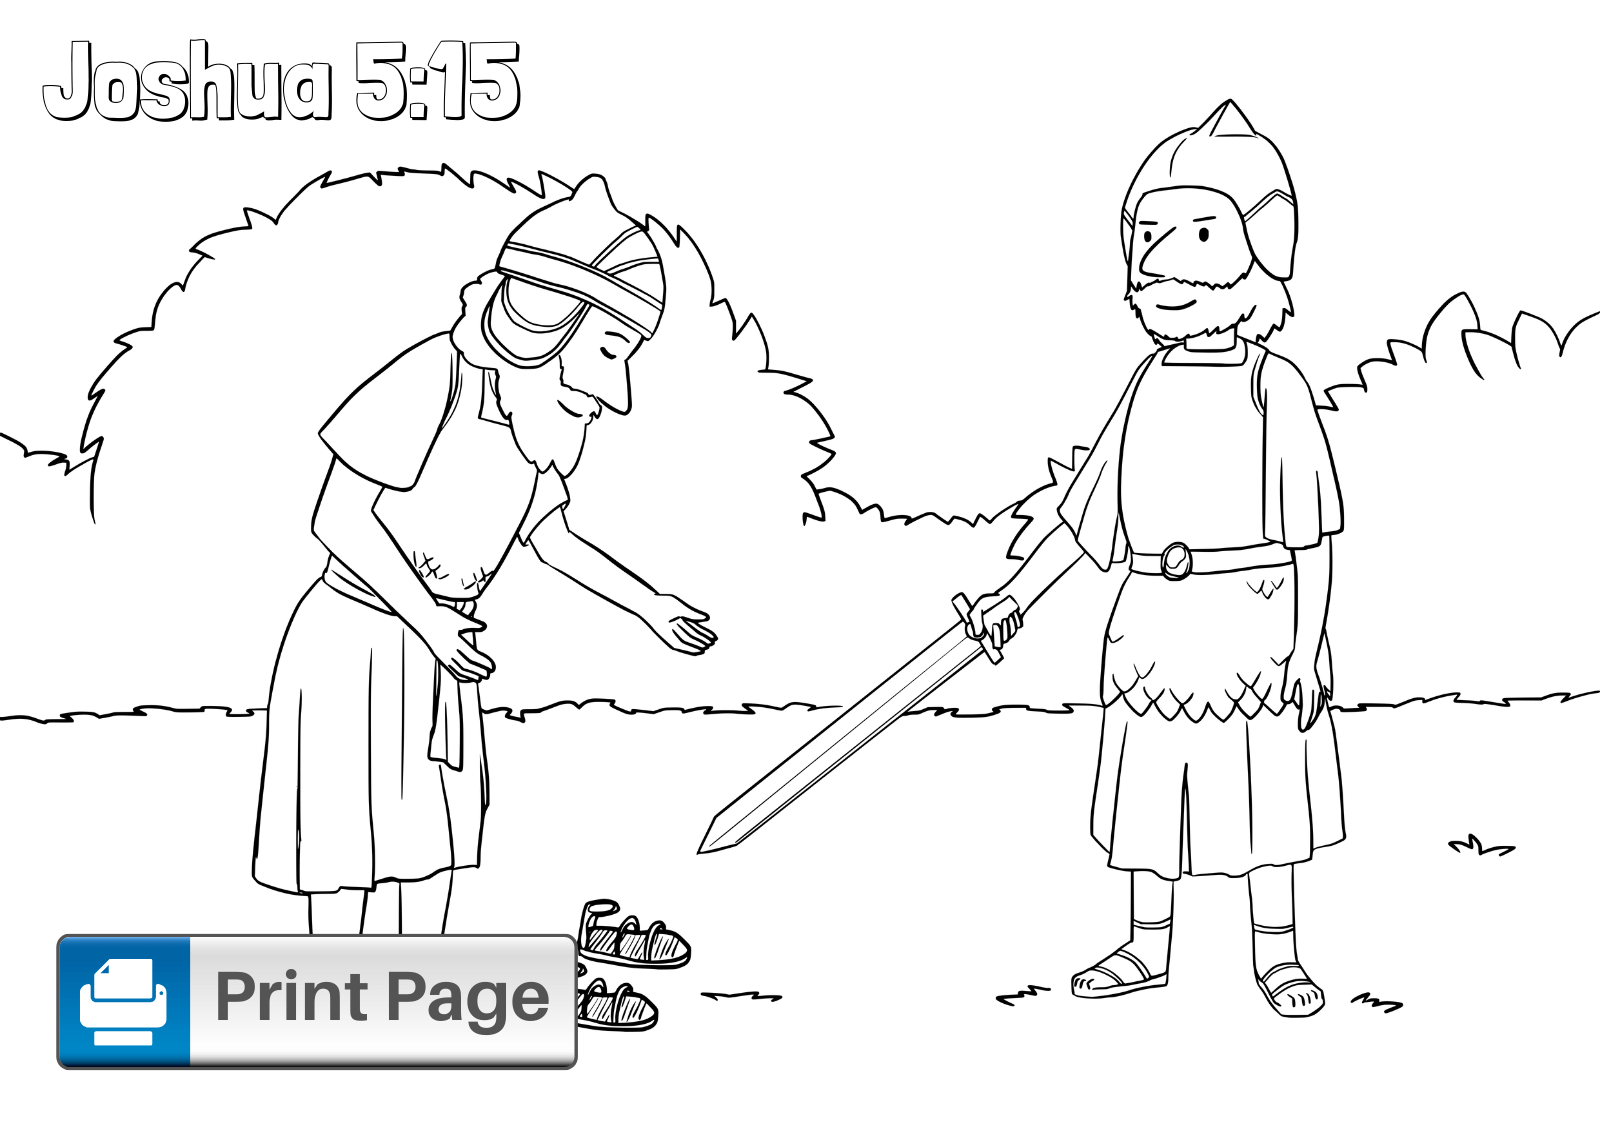 Free Walls of Jericho Coloring Pages for Kids (Printable